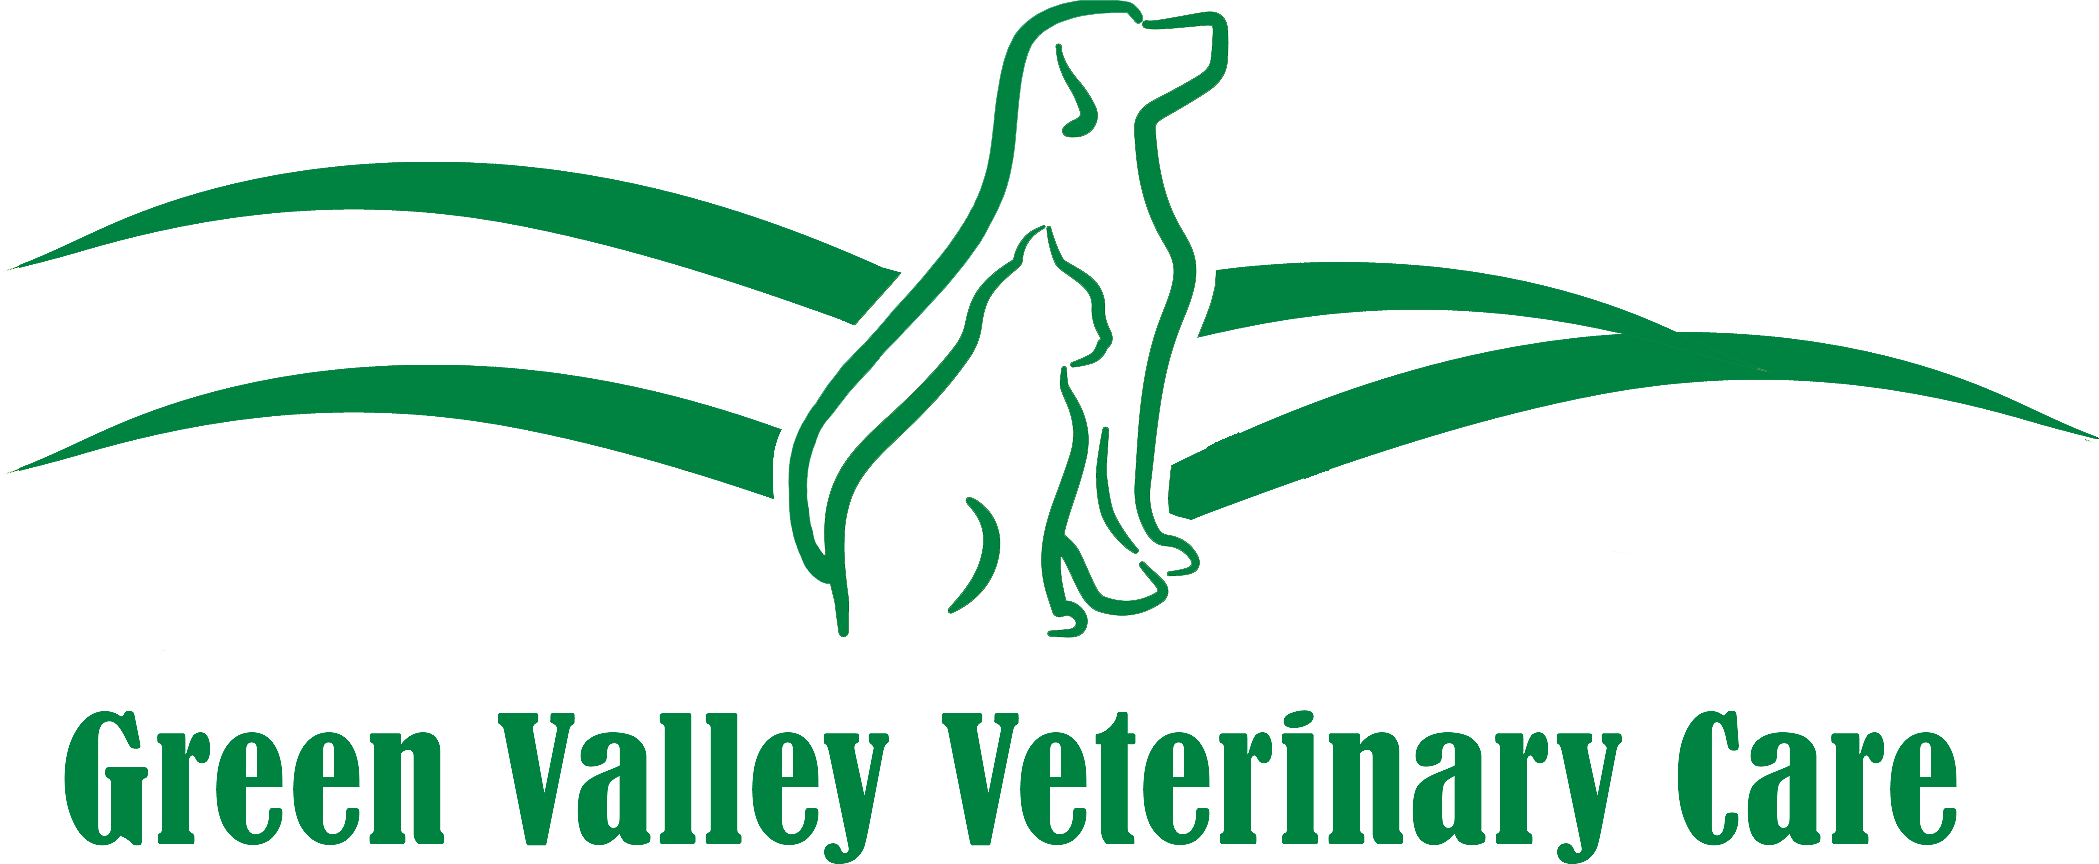 Green Valley Veterinary Care